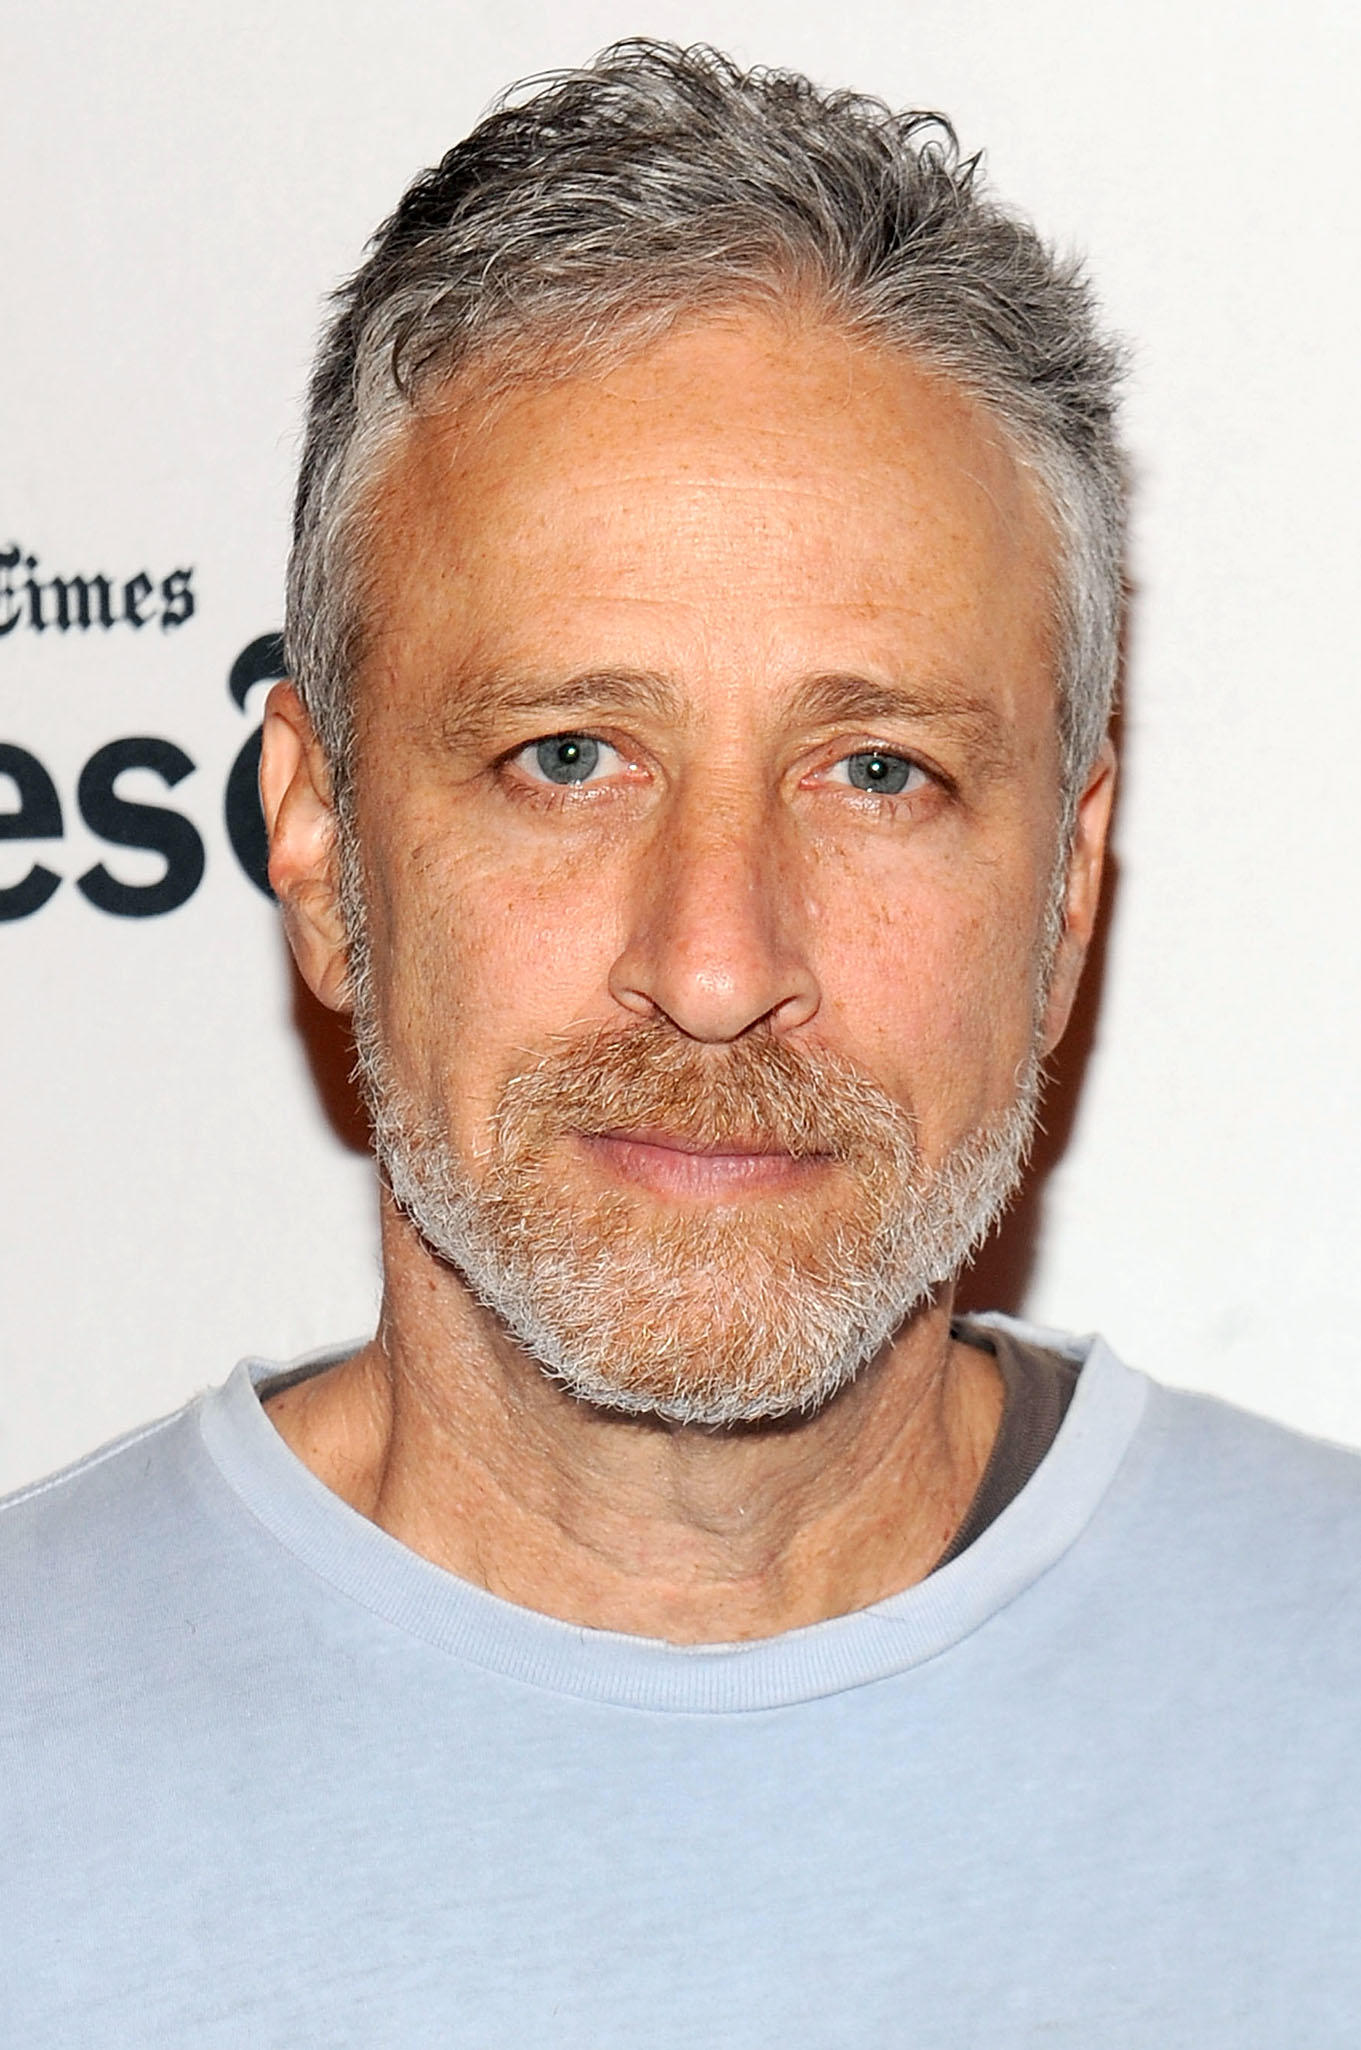 Jon Stewart at TimesTalks Featuring Jon Stewart & Chris Smith in New York City.